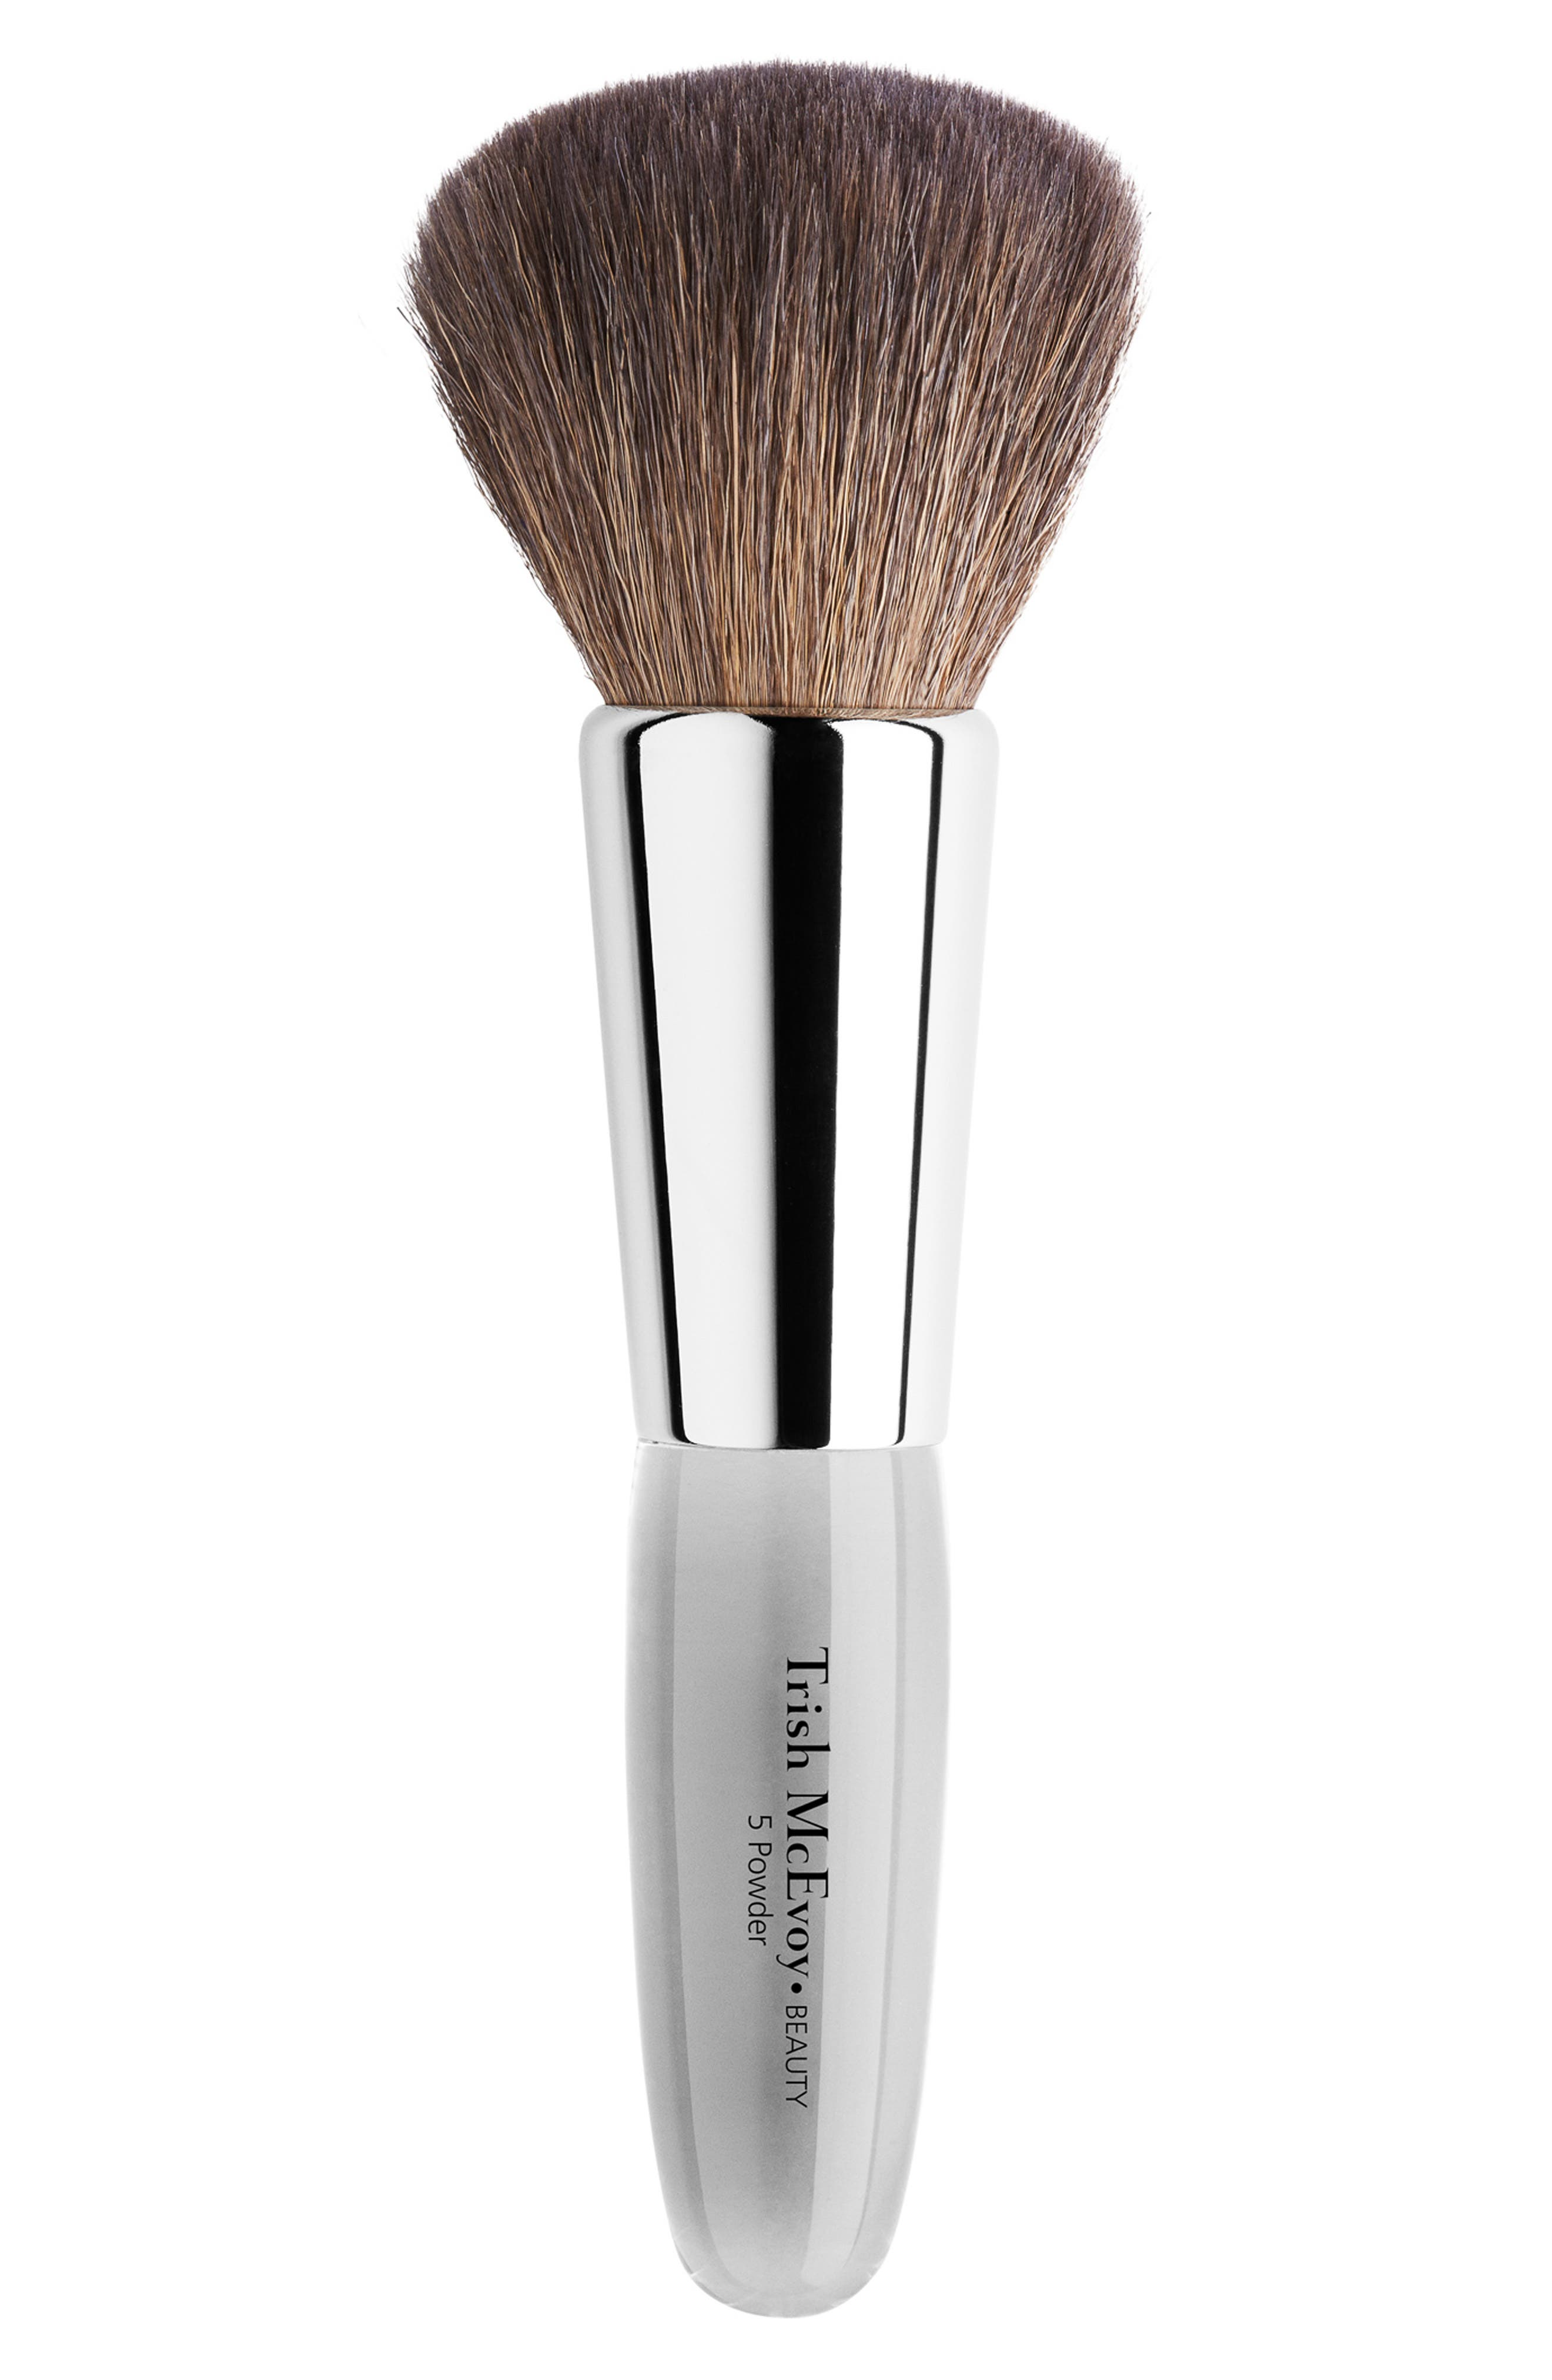 #5 Powder Brush,                             Main thumbnail 1, color,                             No Color